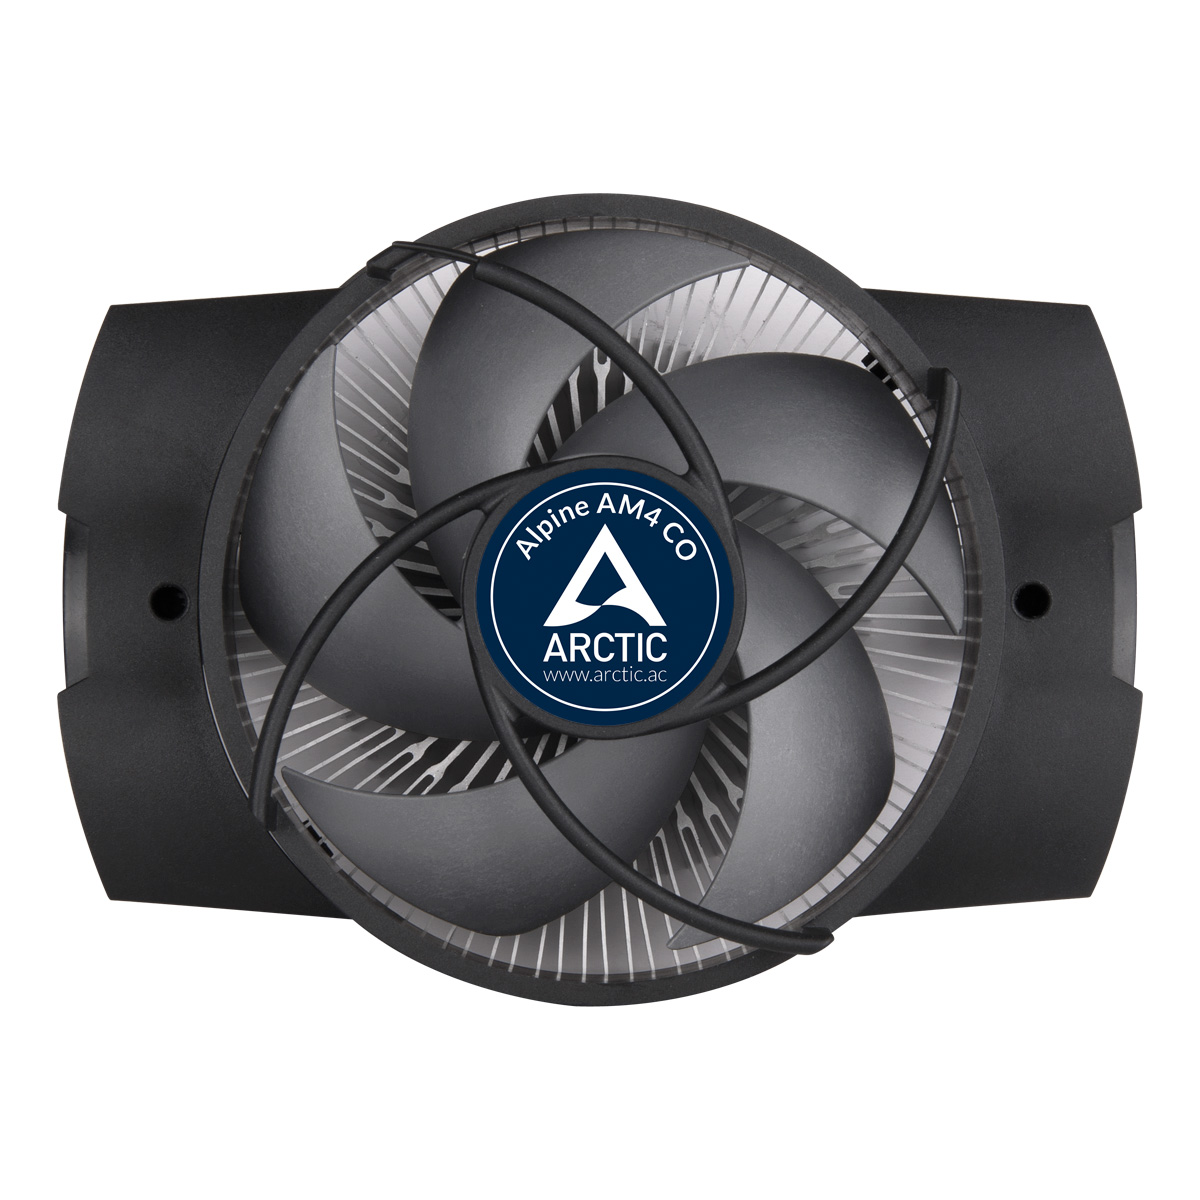 Compact AMD CPU Cooler for Continuous Operation ARCTIC Alpine AM4 CO Front View